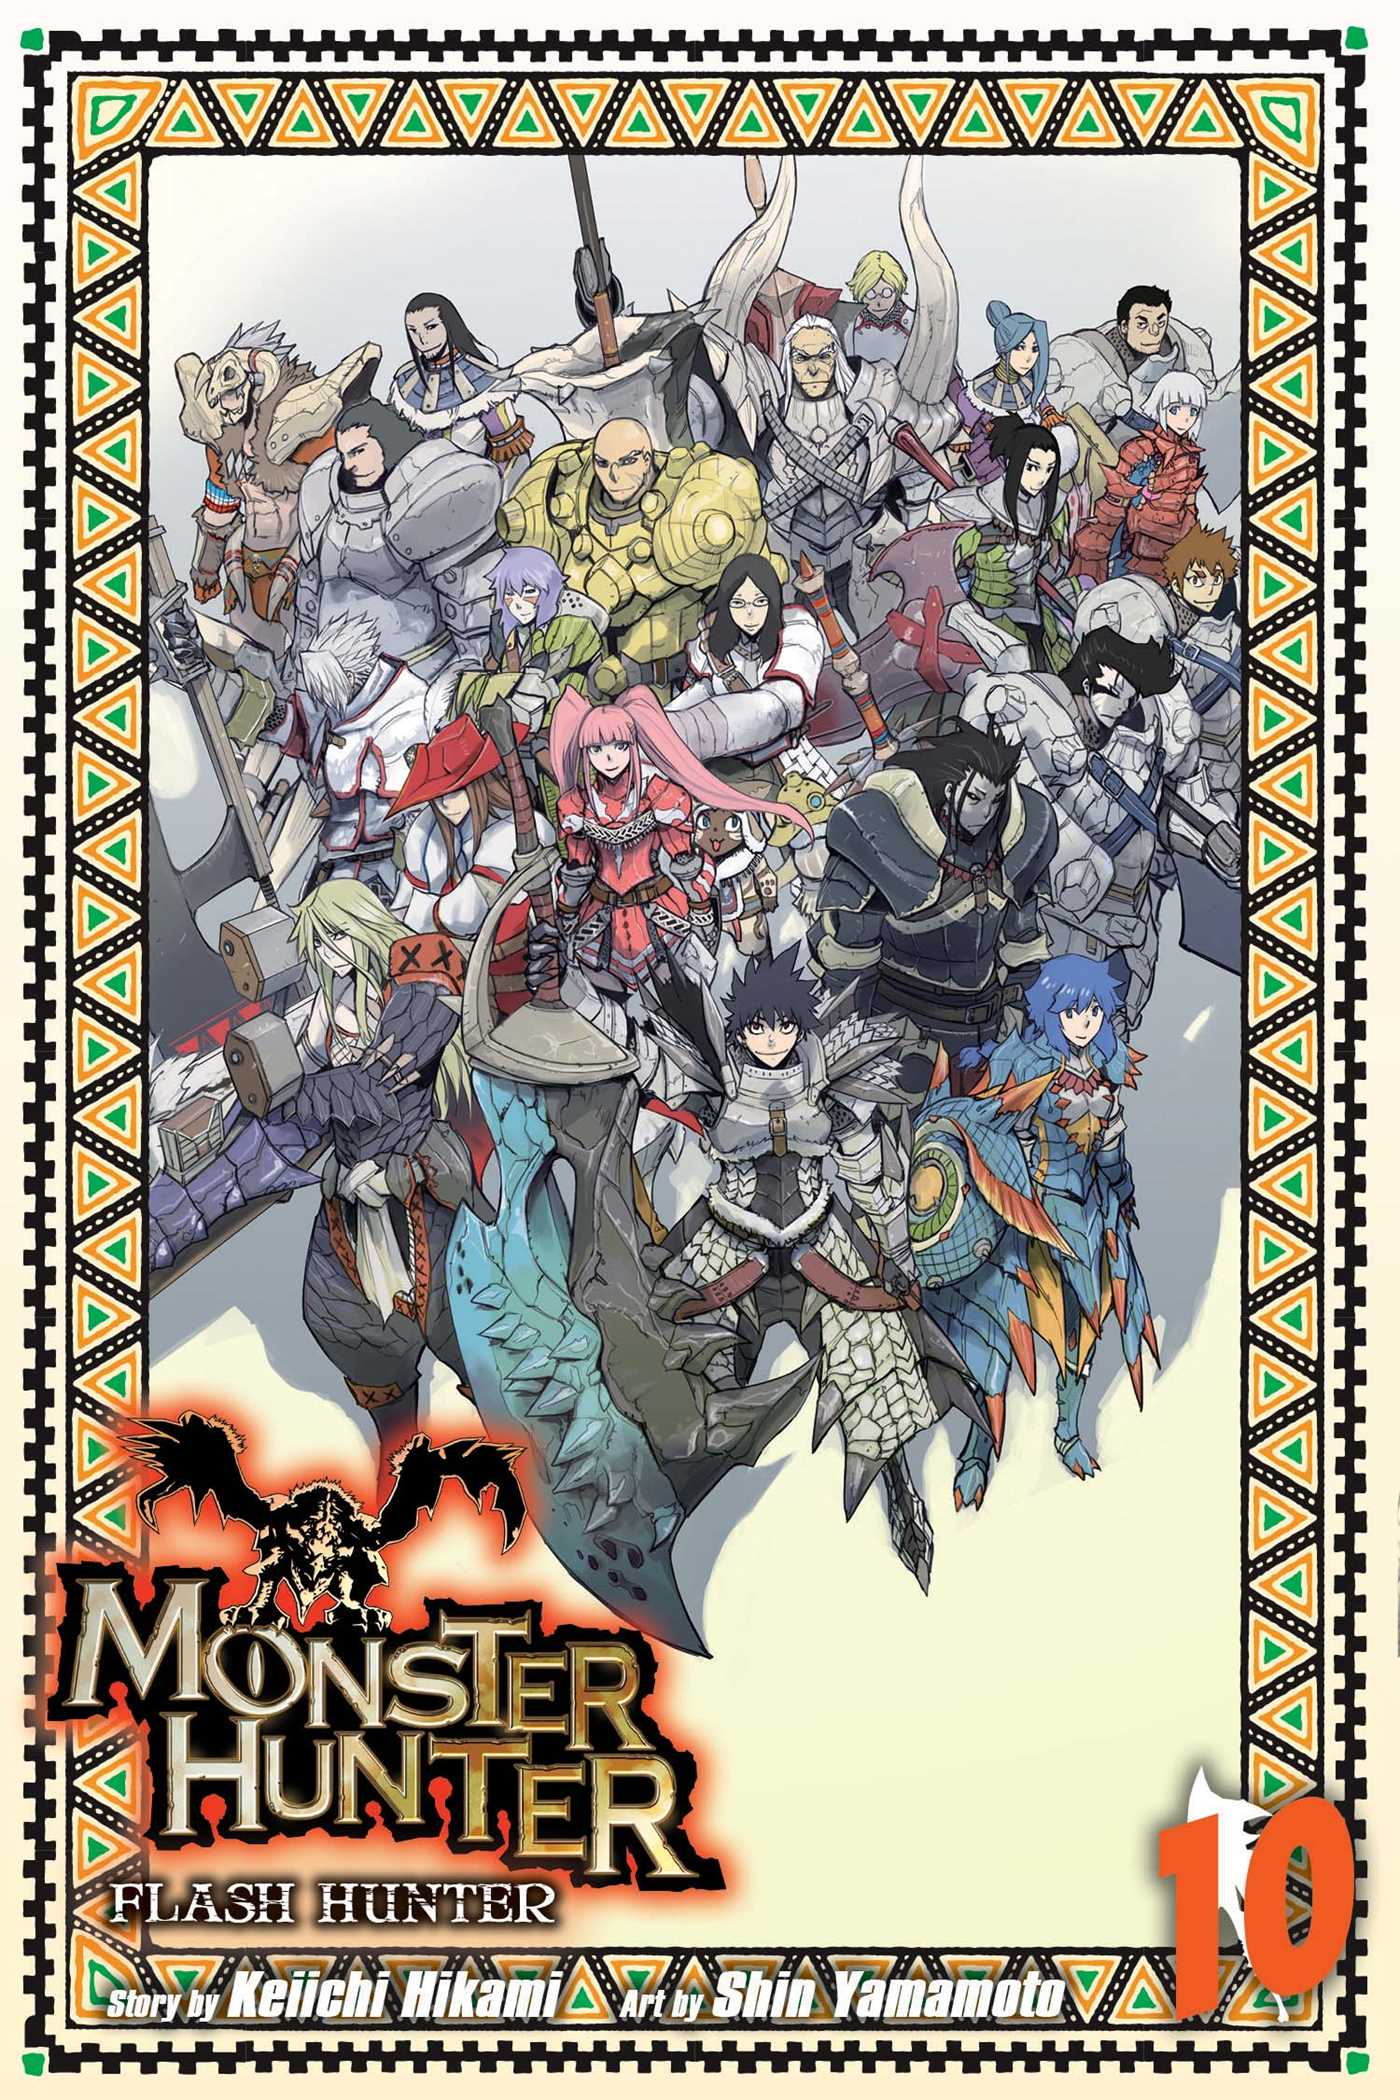 Monster hunter flash hunter vol 10 9781421584355 hr